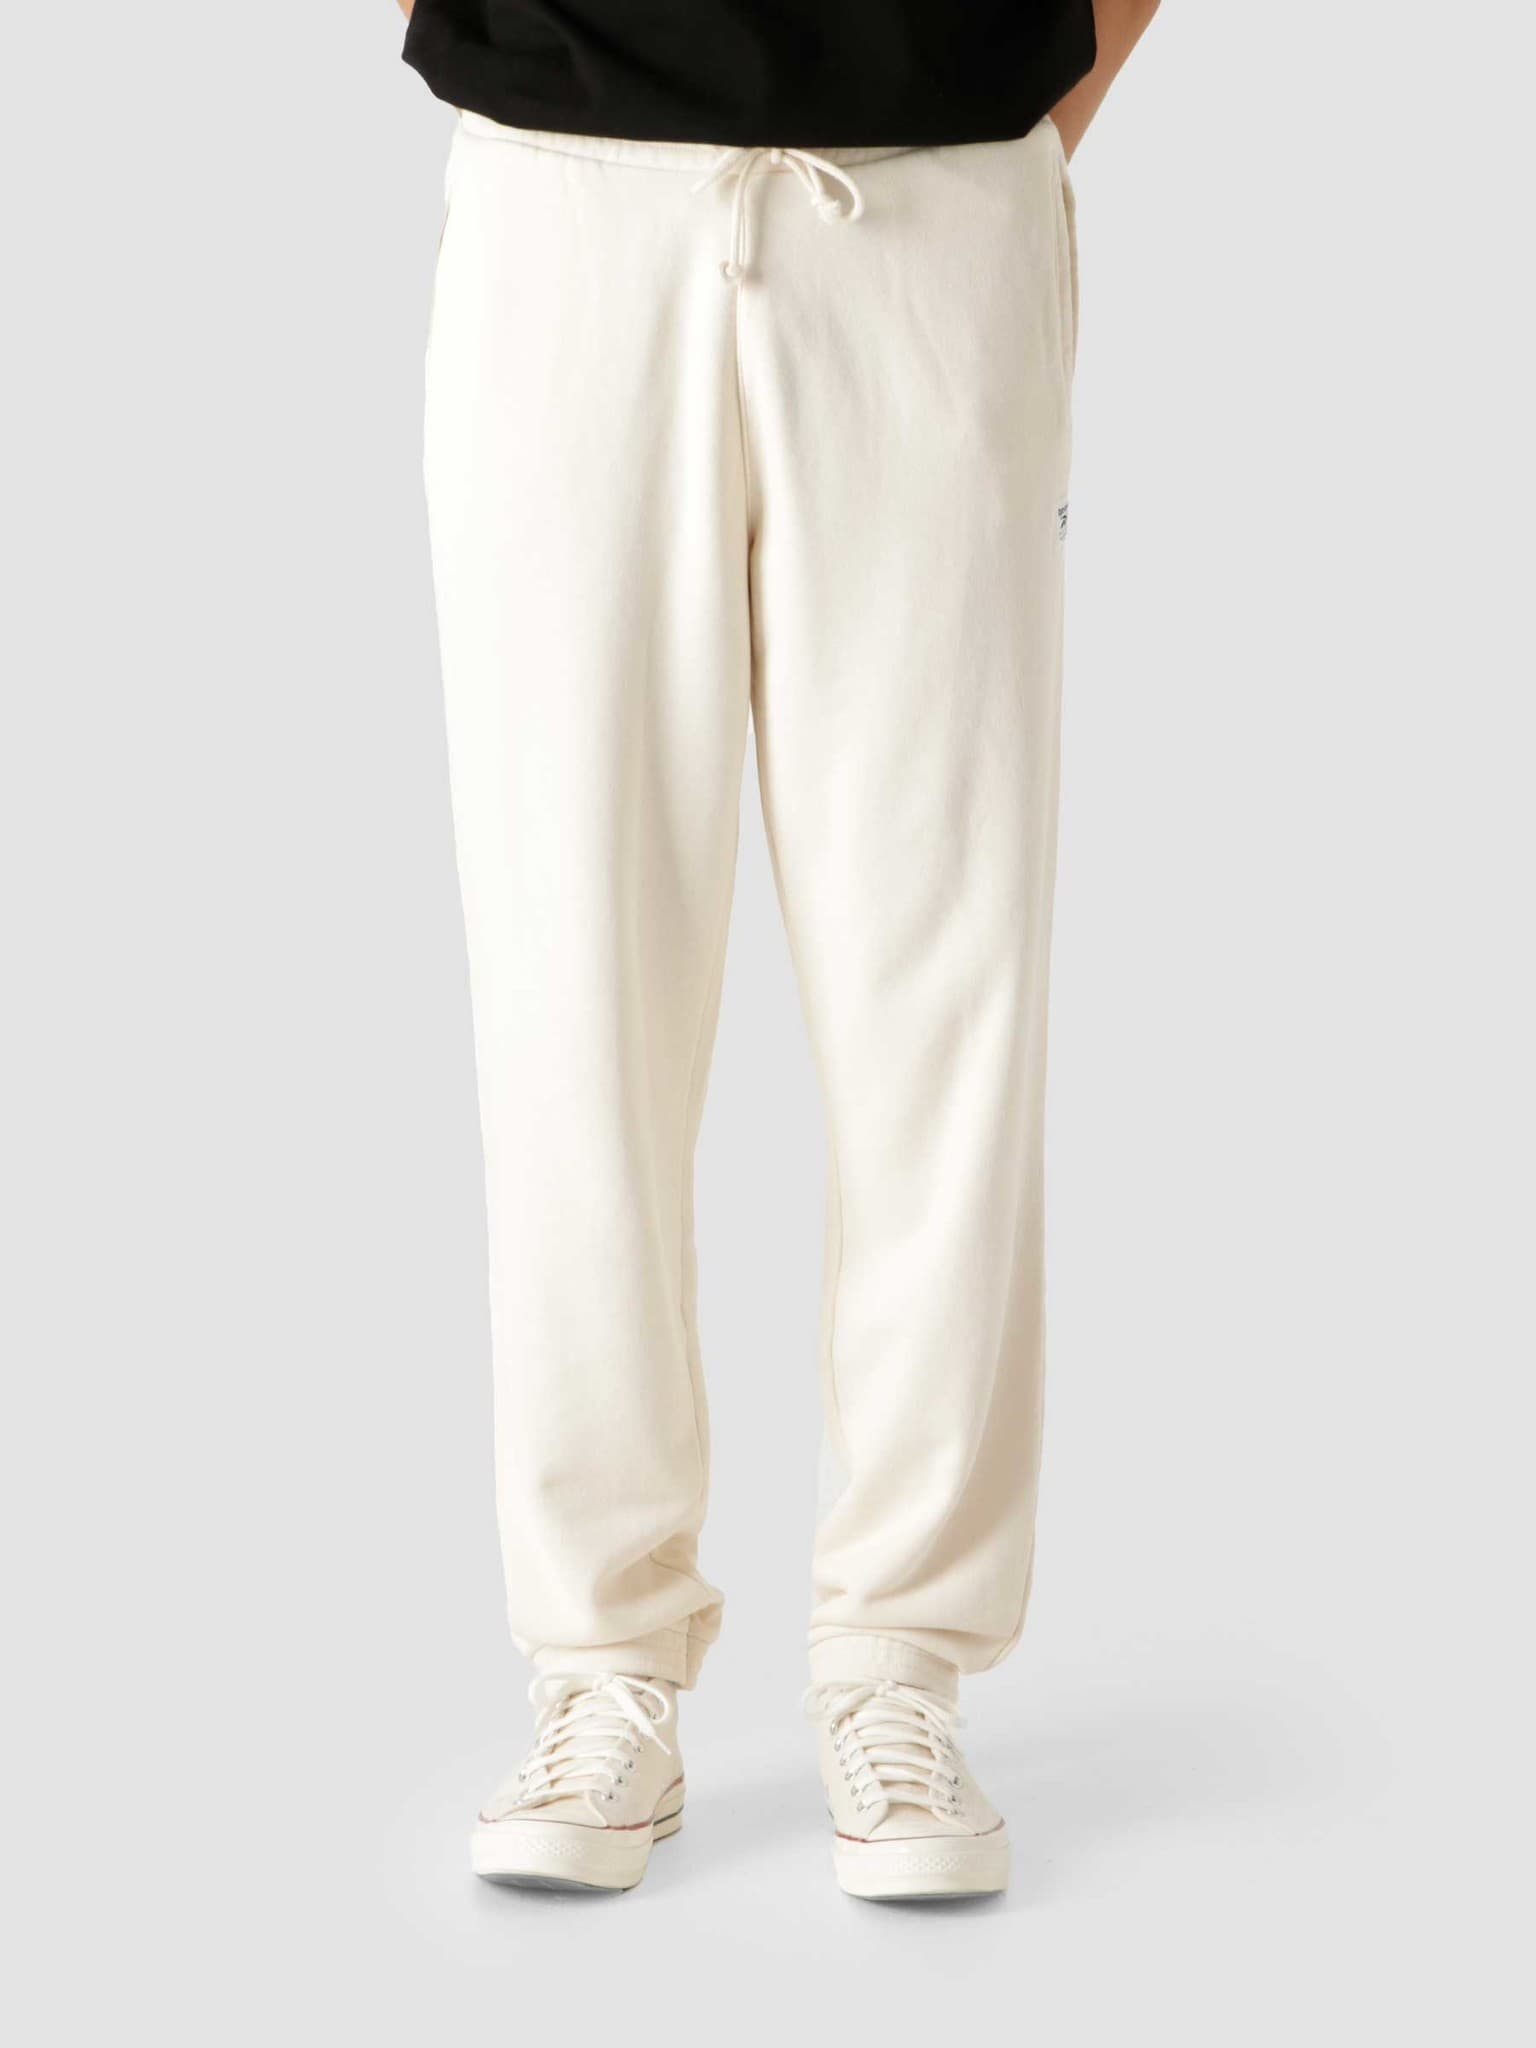 CL Nd Pant Non Dyed GS9157